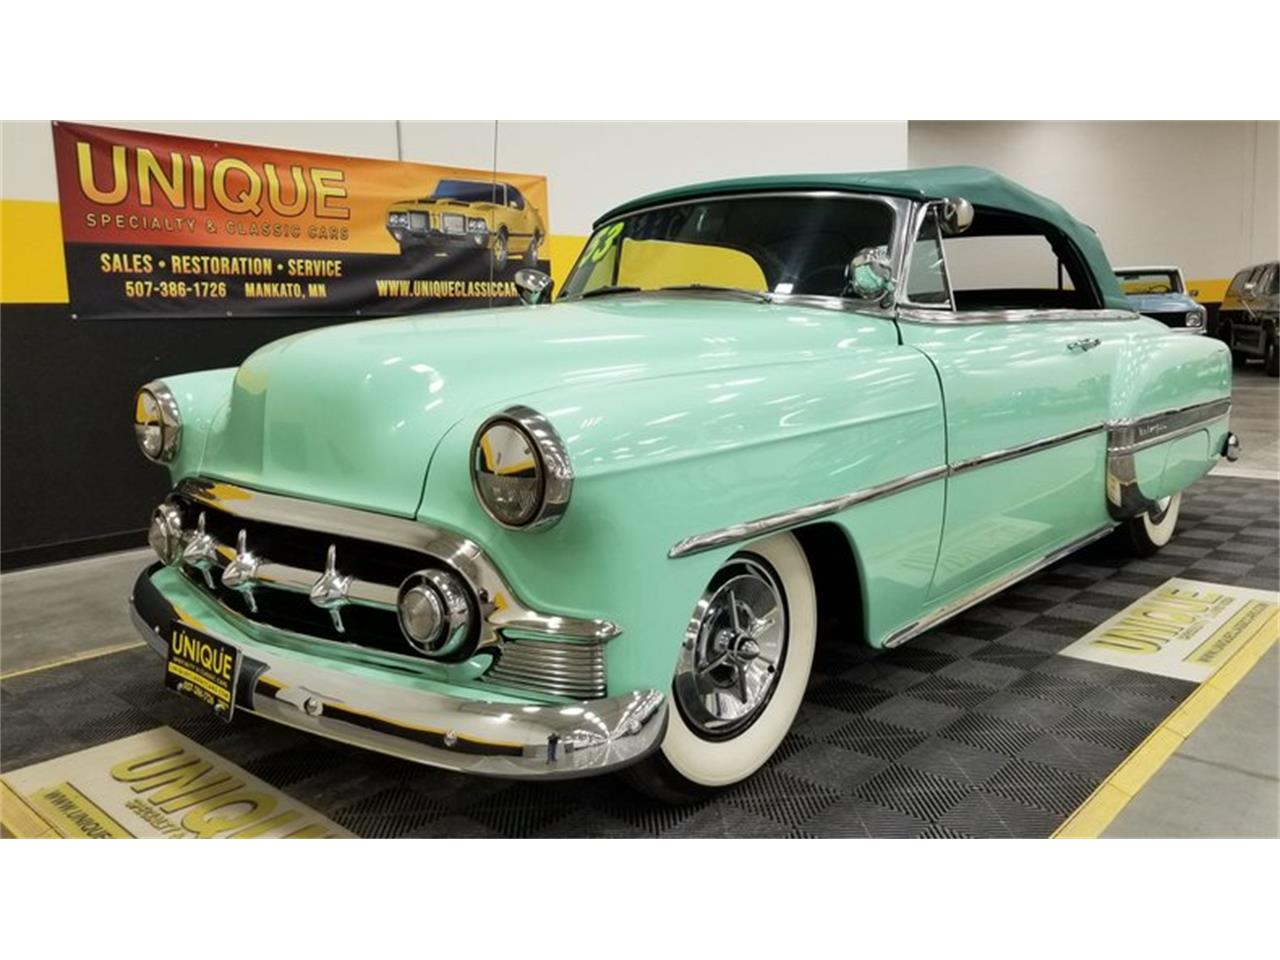 1953 Chevrolet Bel Air (CC-1345320) for sale in Mankato, Minnesota